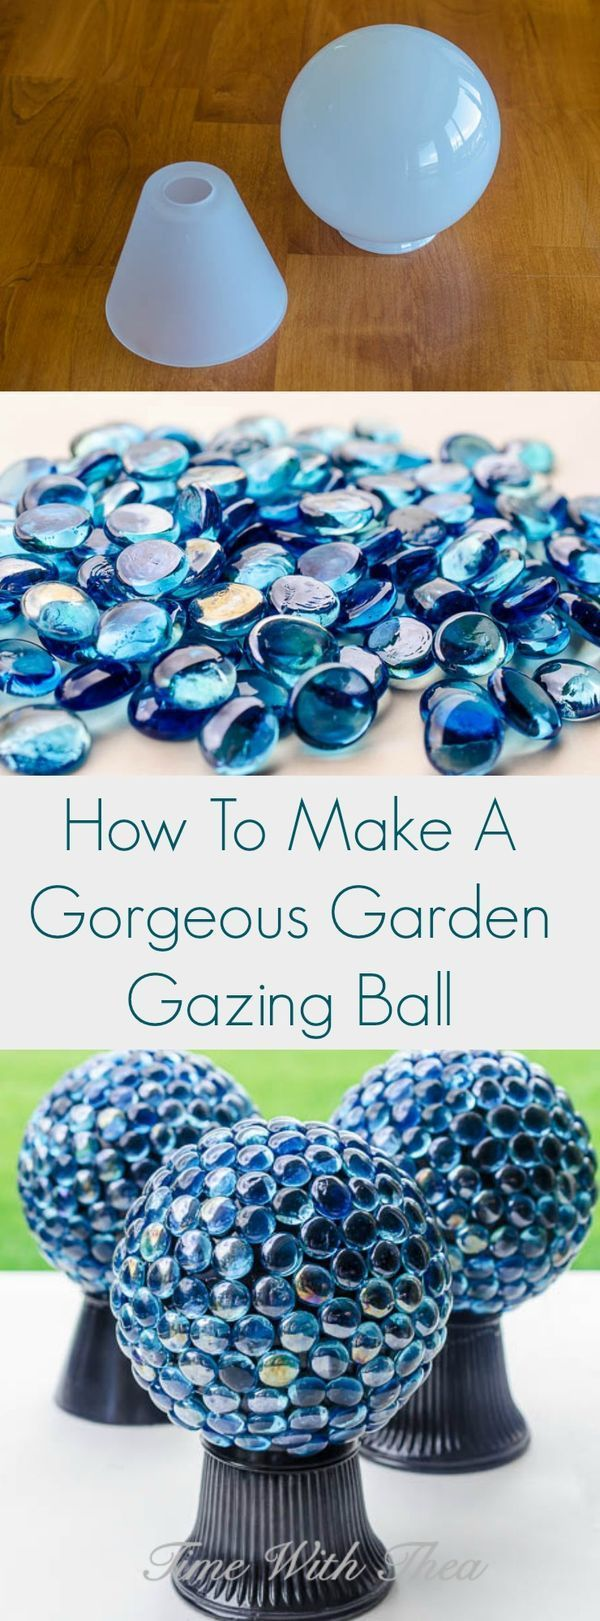 Make this gorgeous garden gazing ball to add to your garden decor using items purchased at the thrift store and dollar store! It is both easy and inexpensive to make with these detailed tips and instructions.